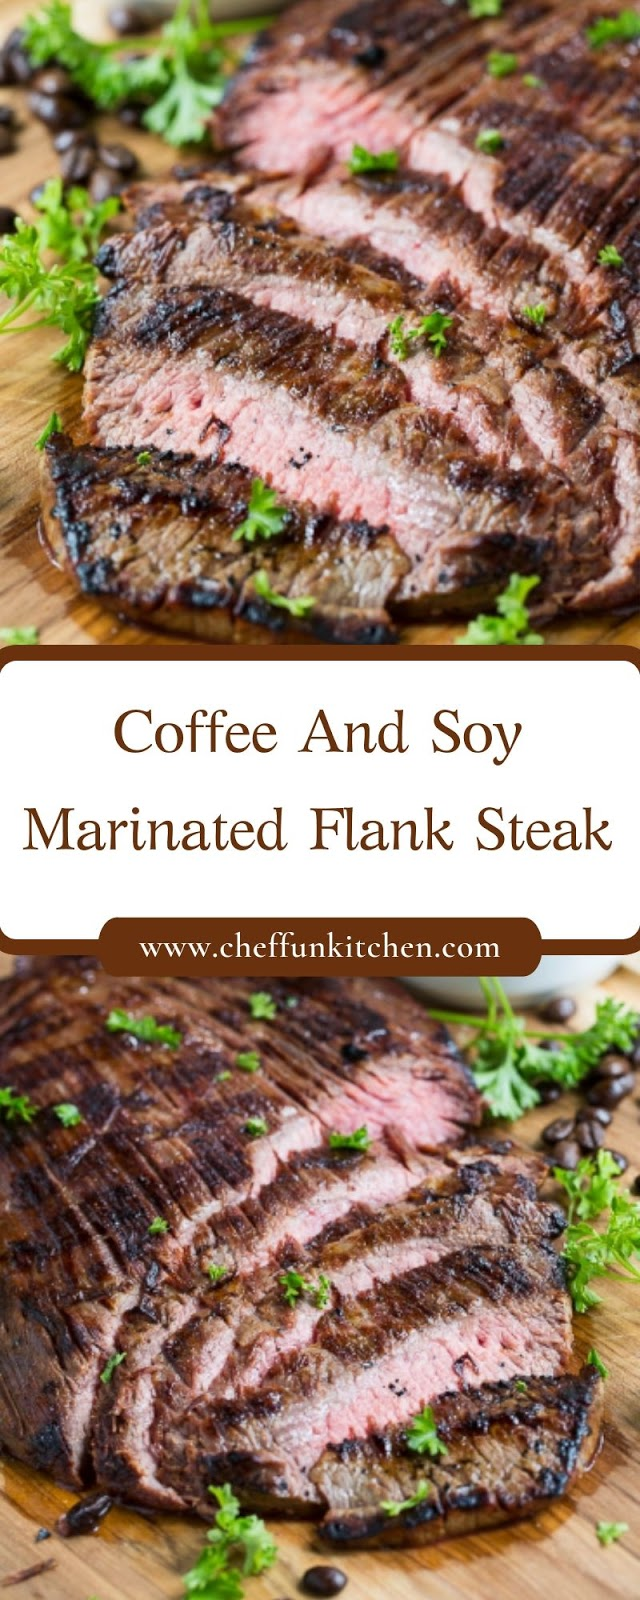 Coffee And Soy Marinated Flank Steak